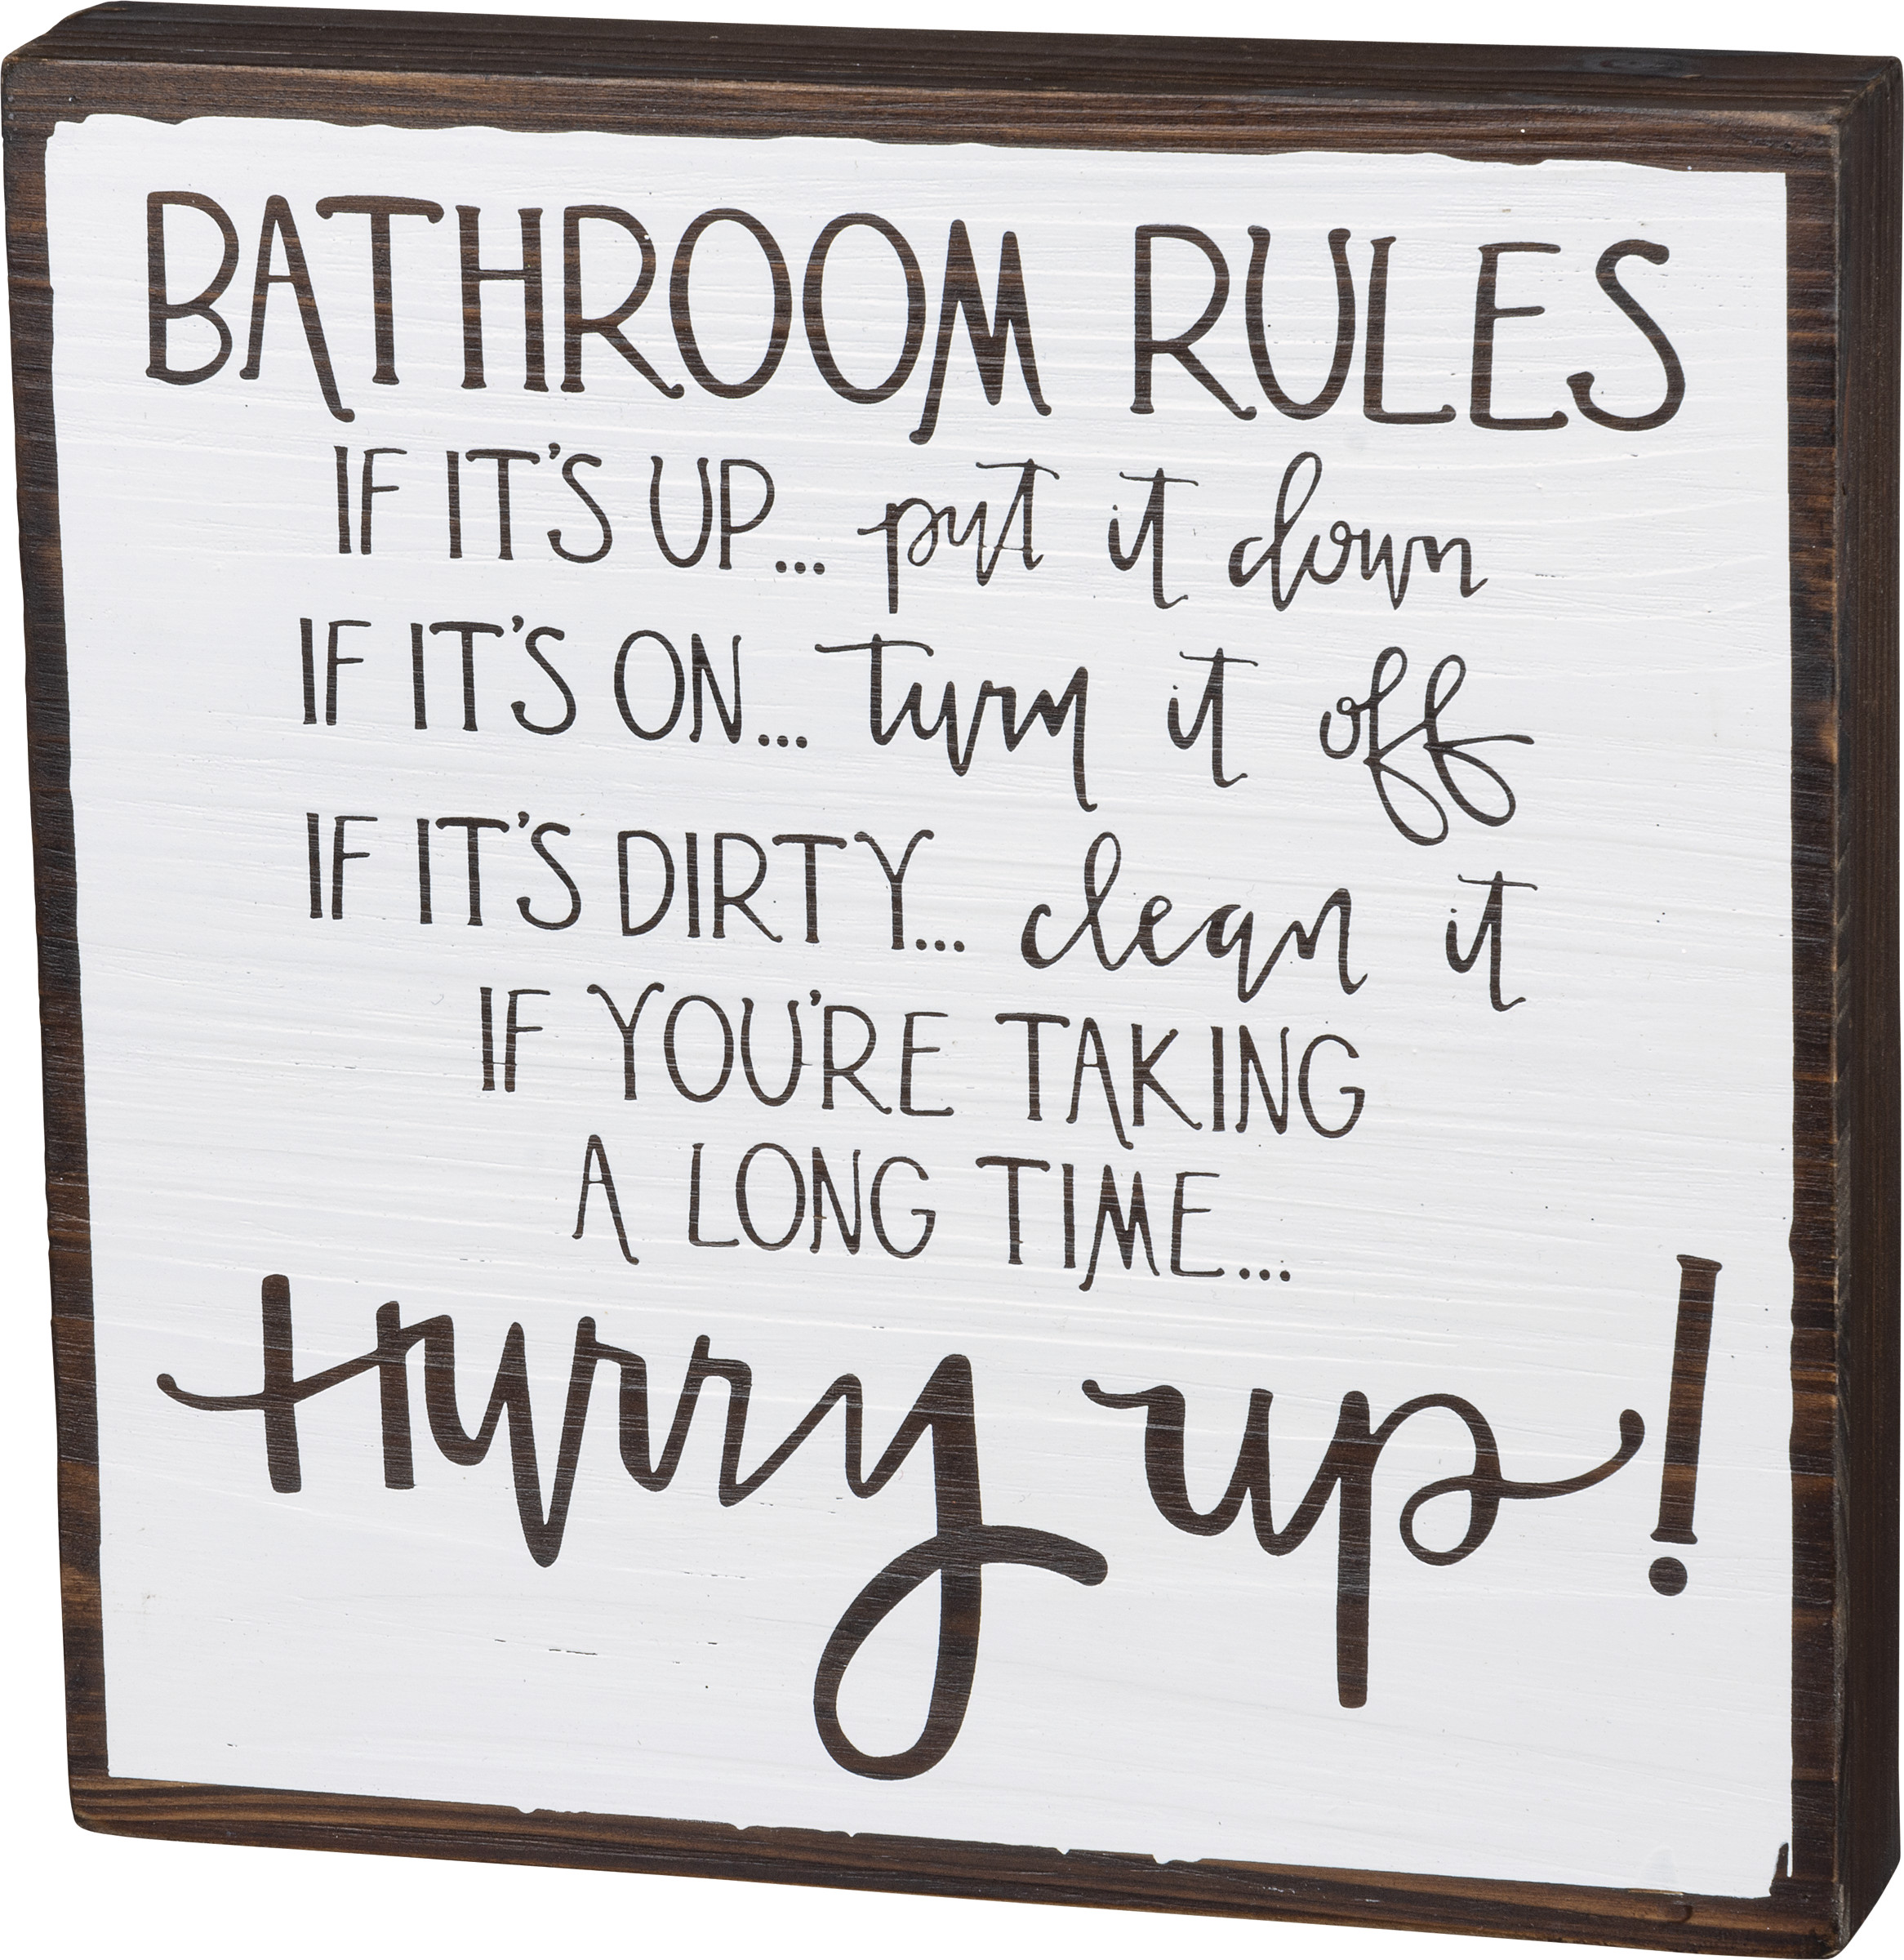 Bathroom Rules Home Decor Decorative Wooden Box Sign 10x10 From Primitives By Kathy